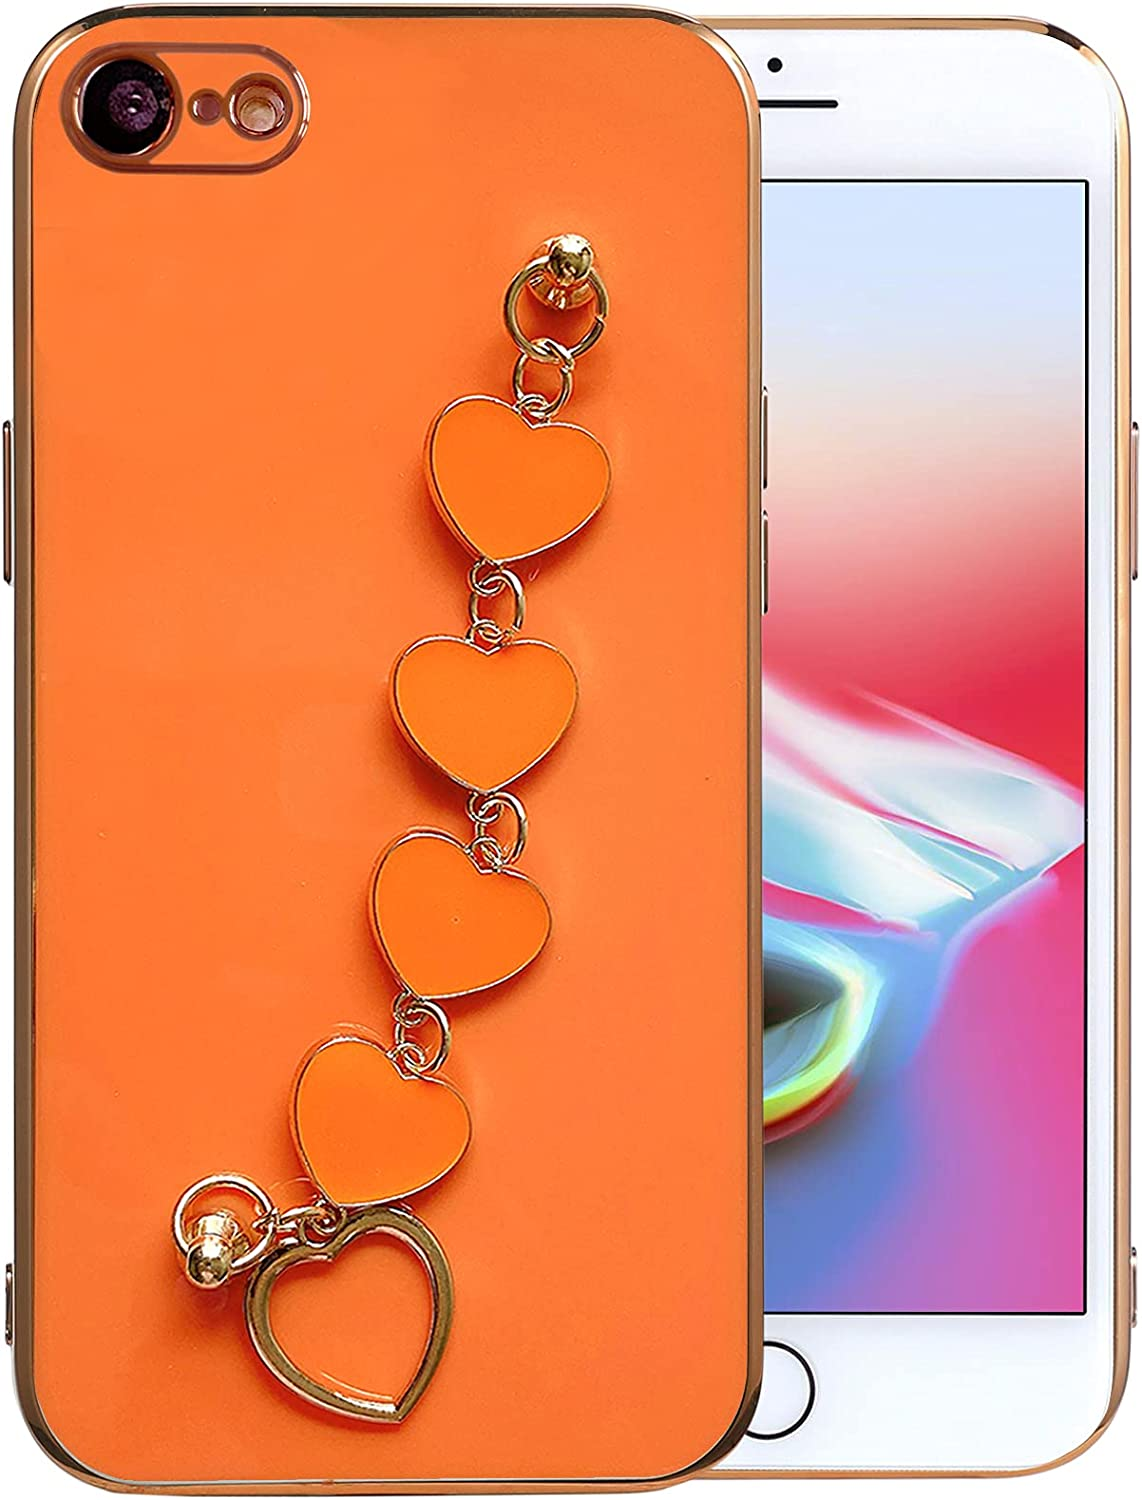 Qokey Compatible for iPhone SE 2020 Case,iPhone 7 Case,iPhone 8 Case 4.7 inch Luxury Plating Soft TPU Case with Love Heart Chain Bracelet Strap Shiny Cute Pretty Protective Phone Cover Orange